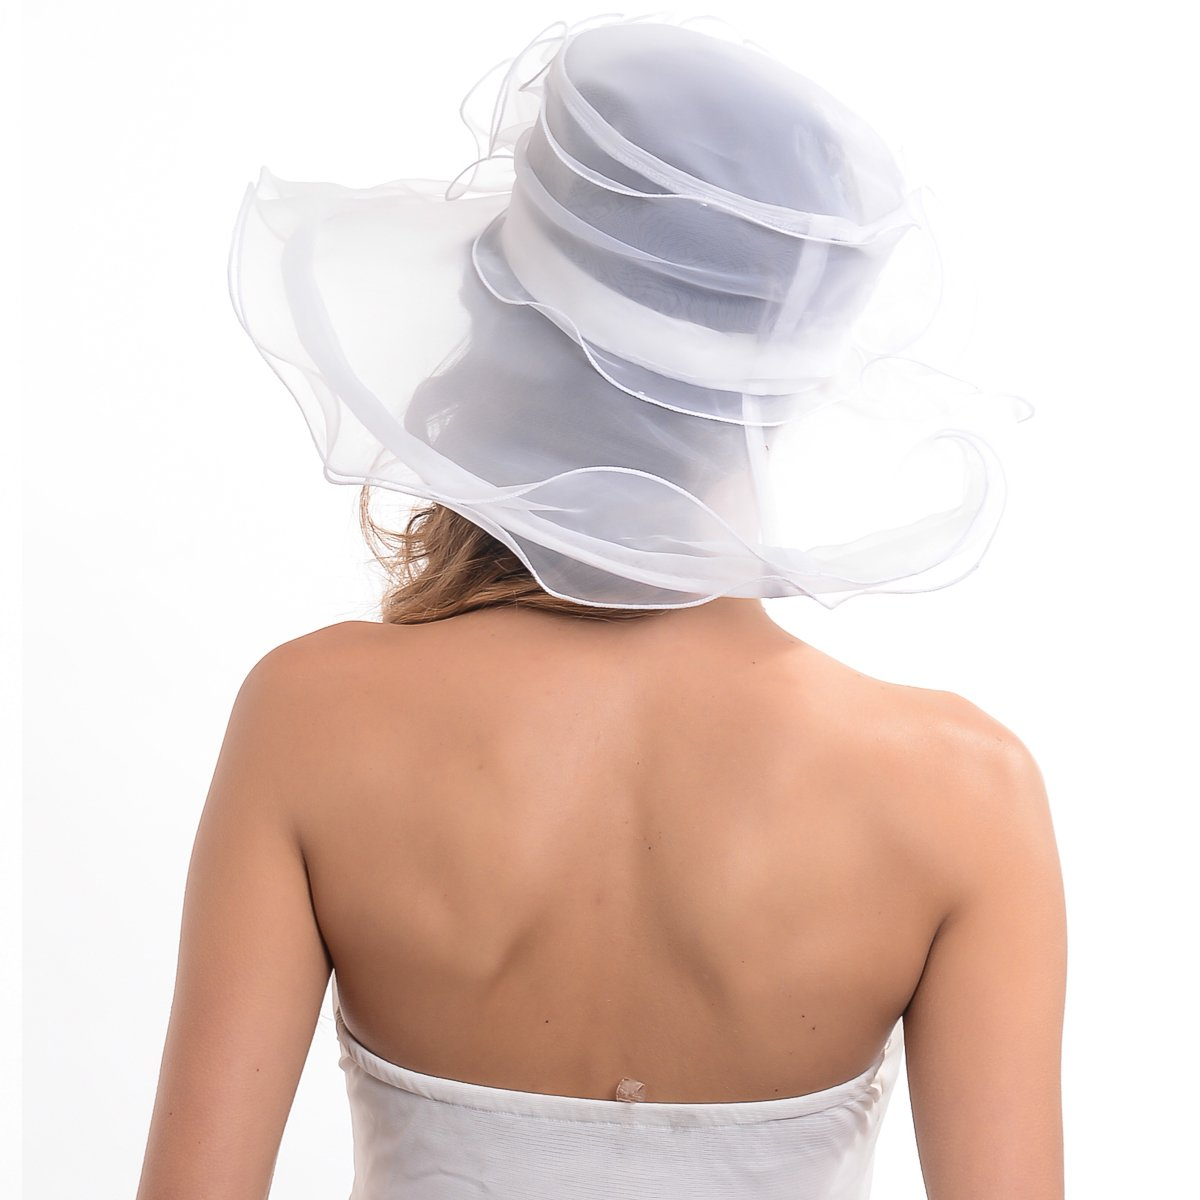 Women's Kentucky Derby Dress Tea Party Church Wedding Hat S609-A (S019-White) by HISSHE (Image #3)